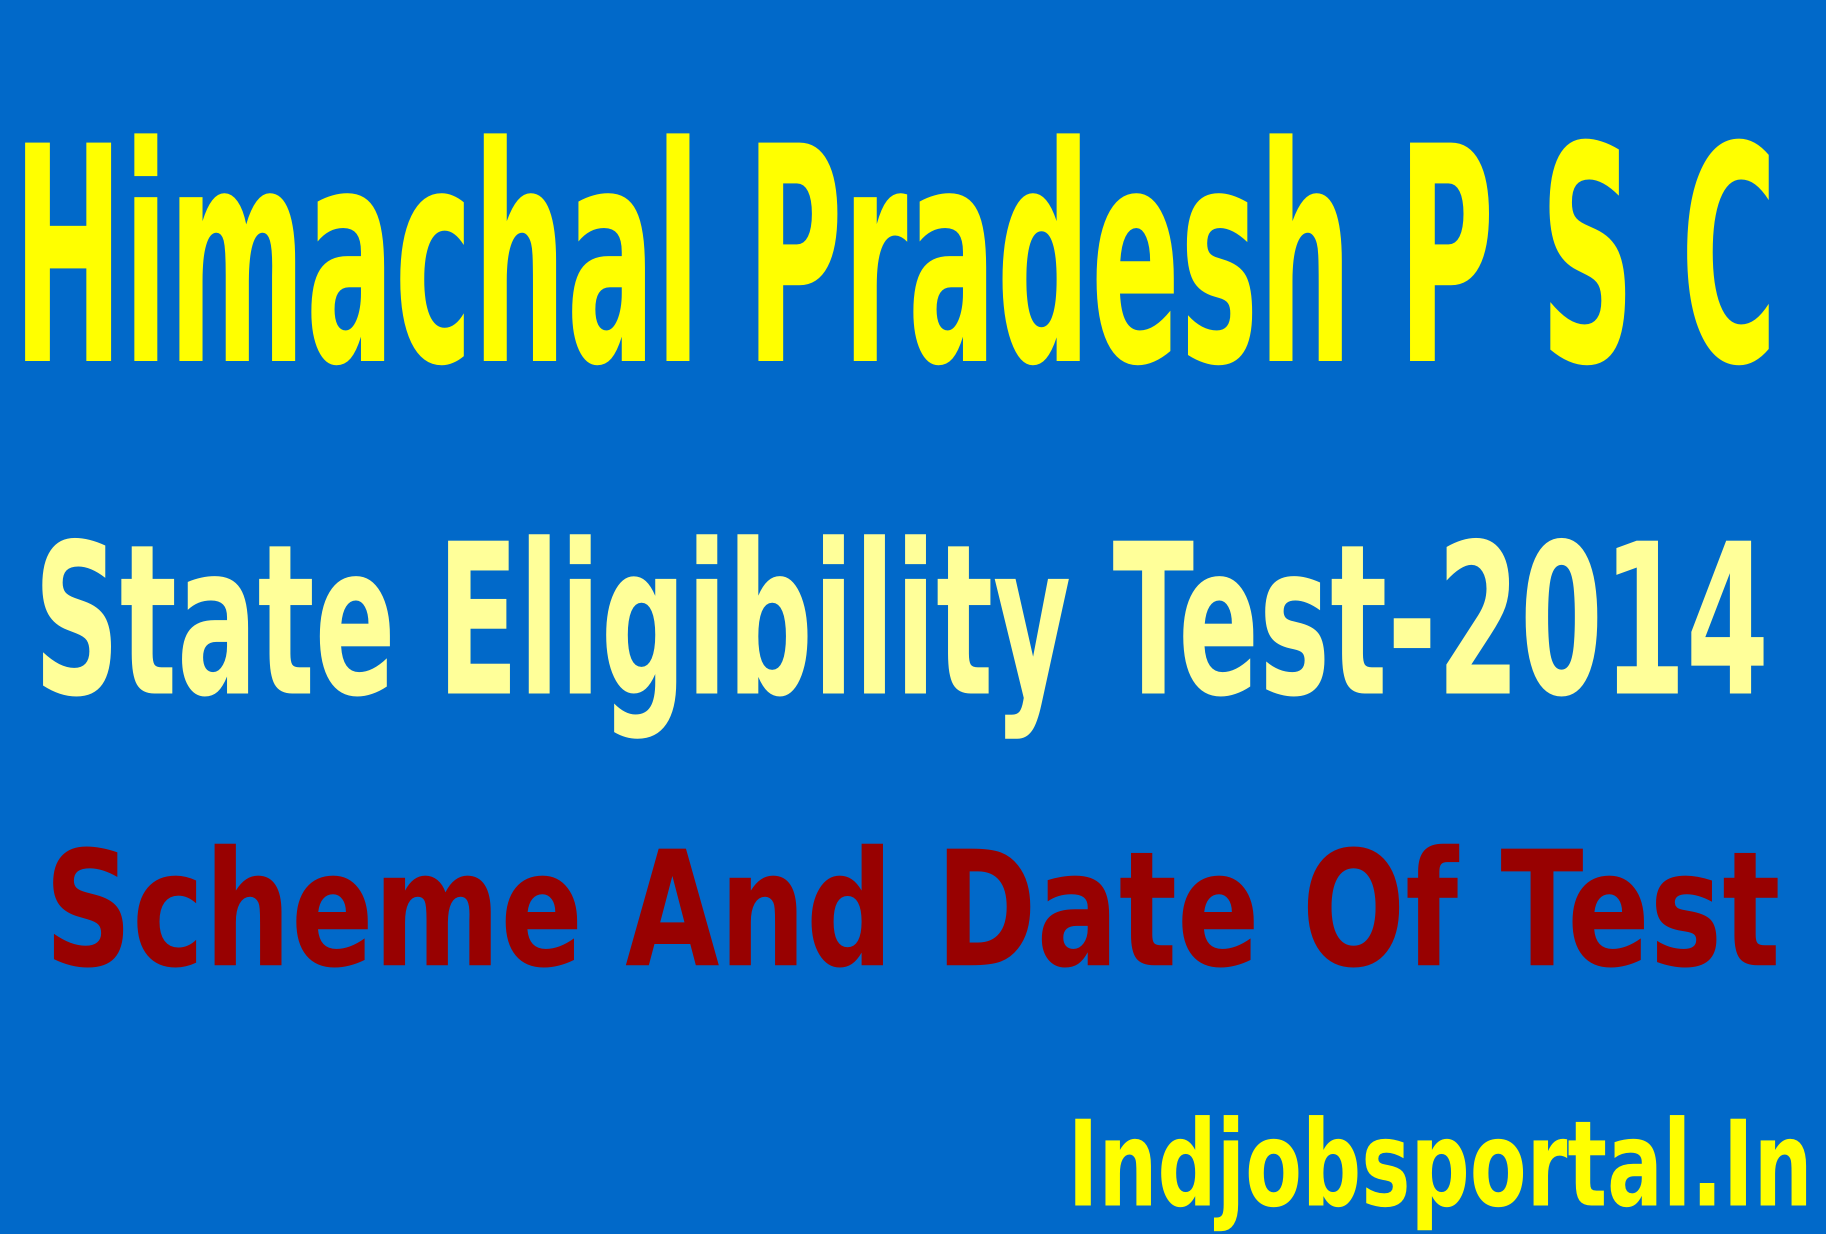 HPPSC Recruitment State Eligibility Test-2014, Scheme And Date Of Test